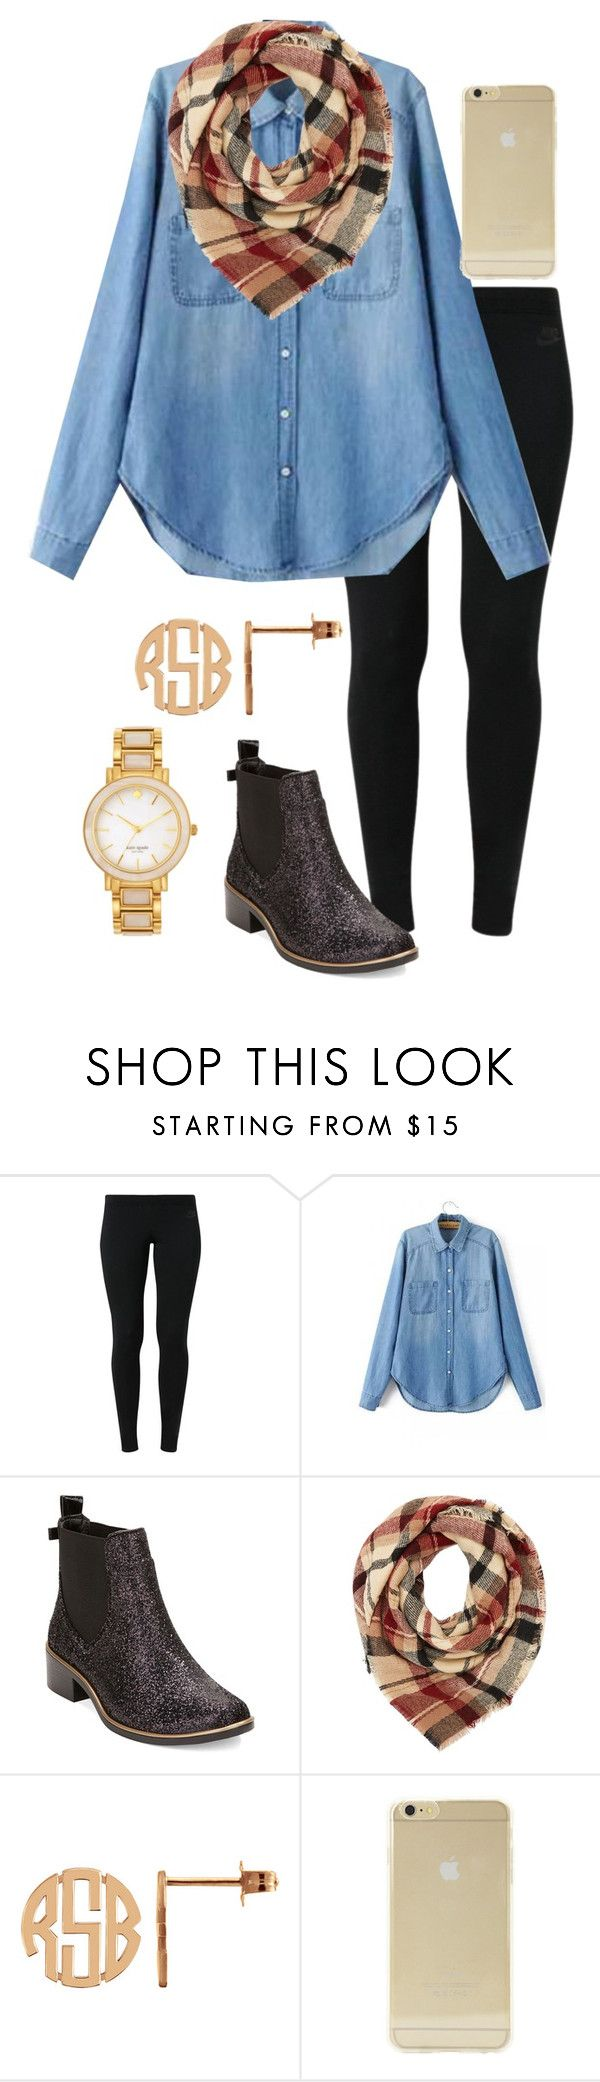 """Happy Friday!!! "" by madelyn-abigail ❤ liked on Polyvore featuring NIKE, Kate Spade, Charlotte Russe, Sonix, women's clothing, women's fashion, women, female, woman and misses"